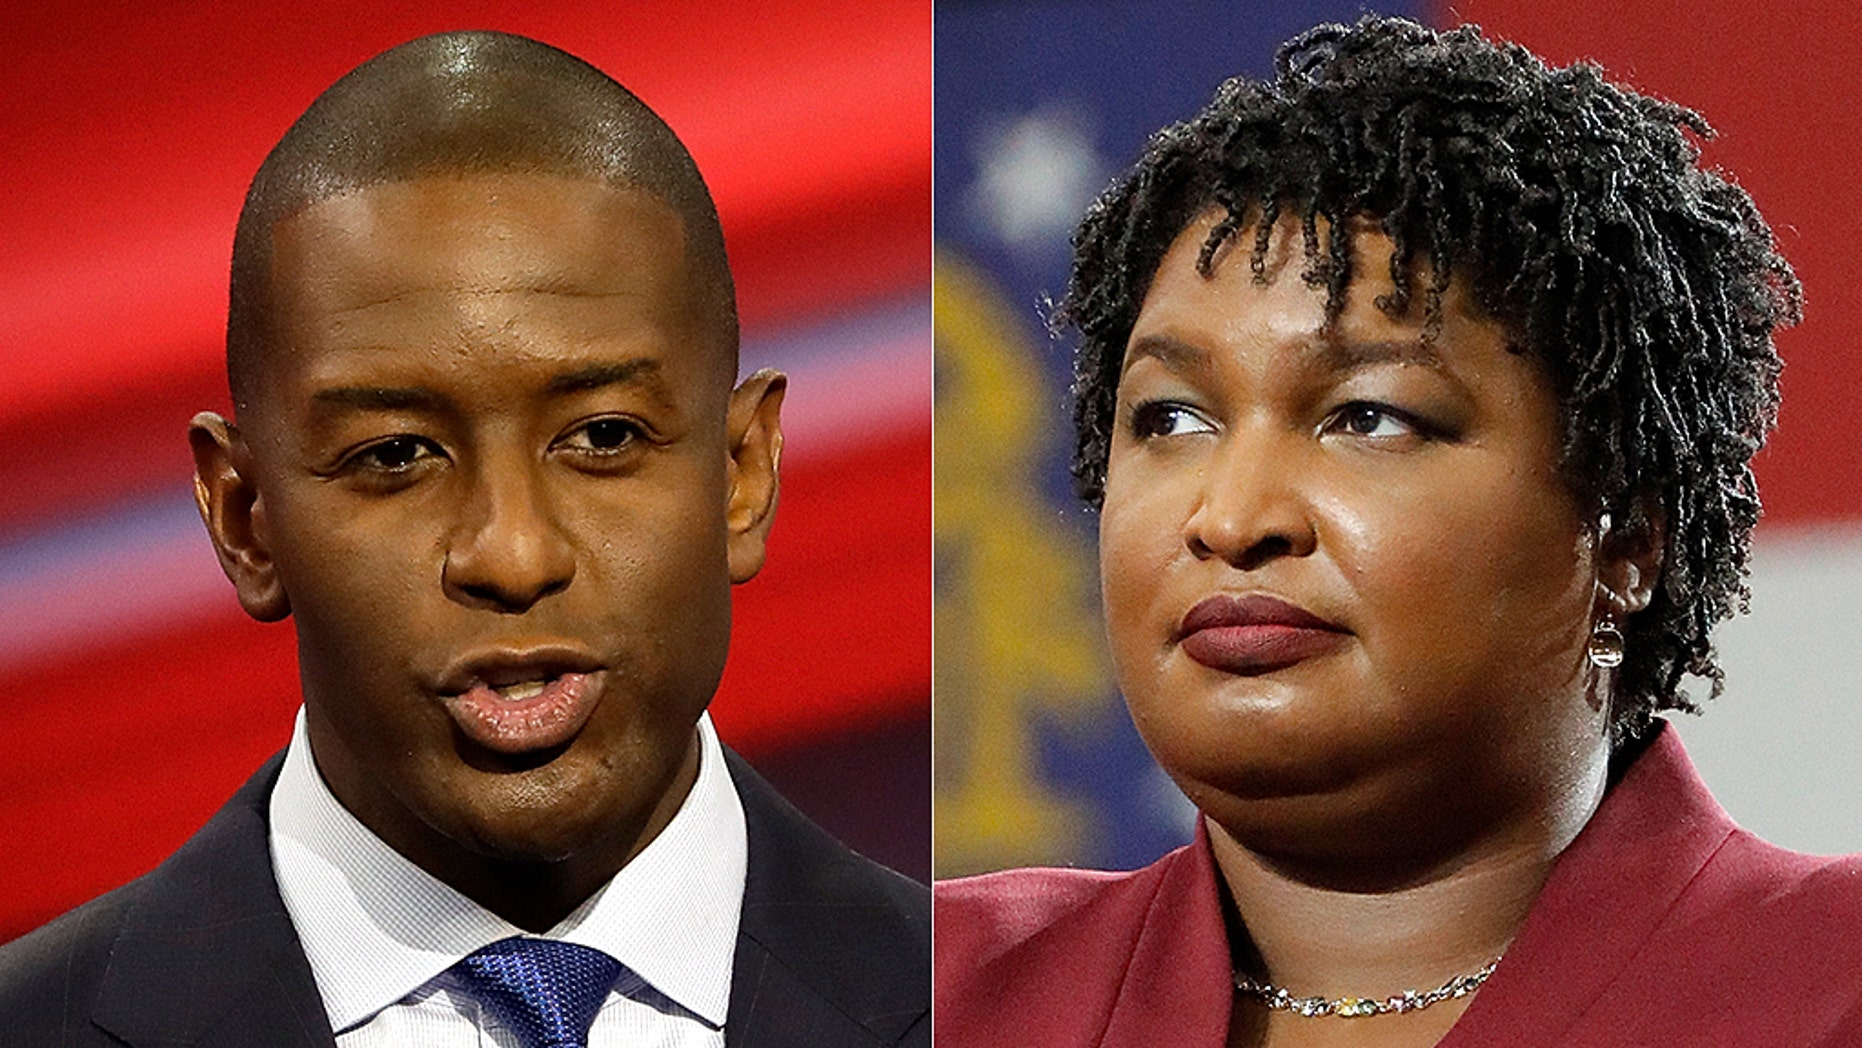 Former gubernatorial candidates Andrew Gillum, left, and Stacey Abrams, right.